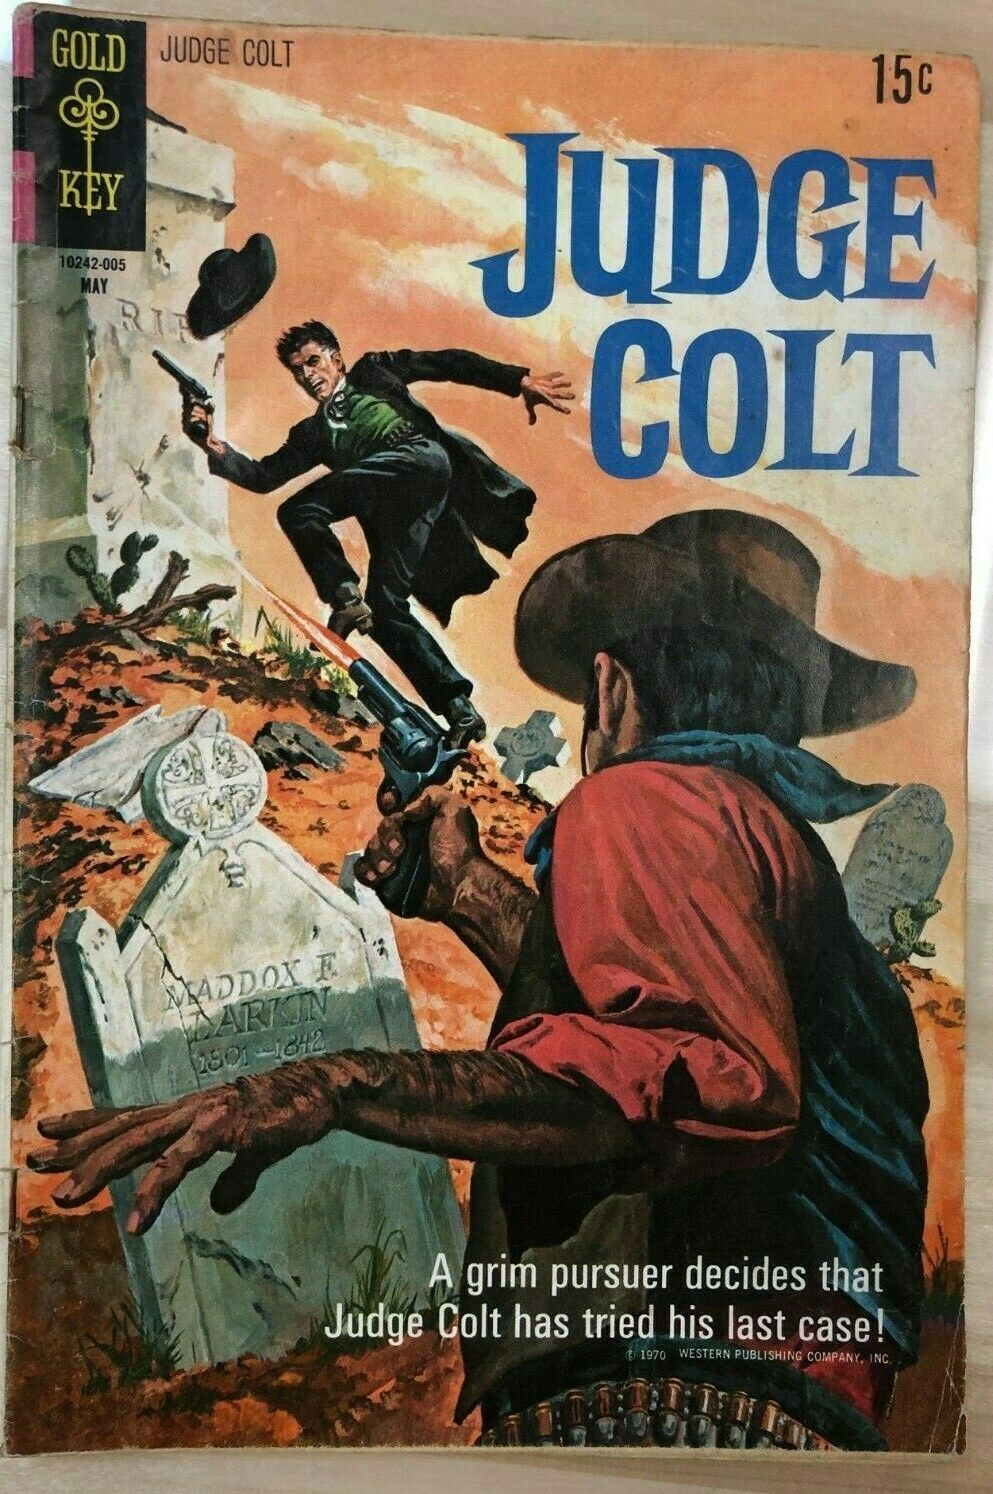 Primary image for JUDGE COLT #3 (1970) Gold Key Comics western VG+